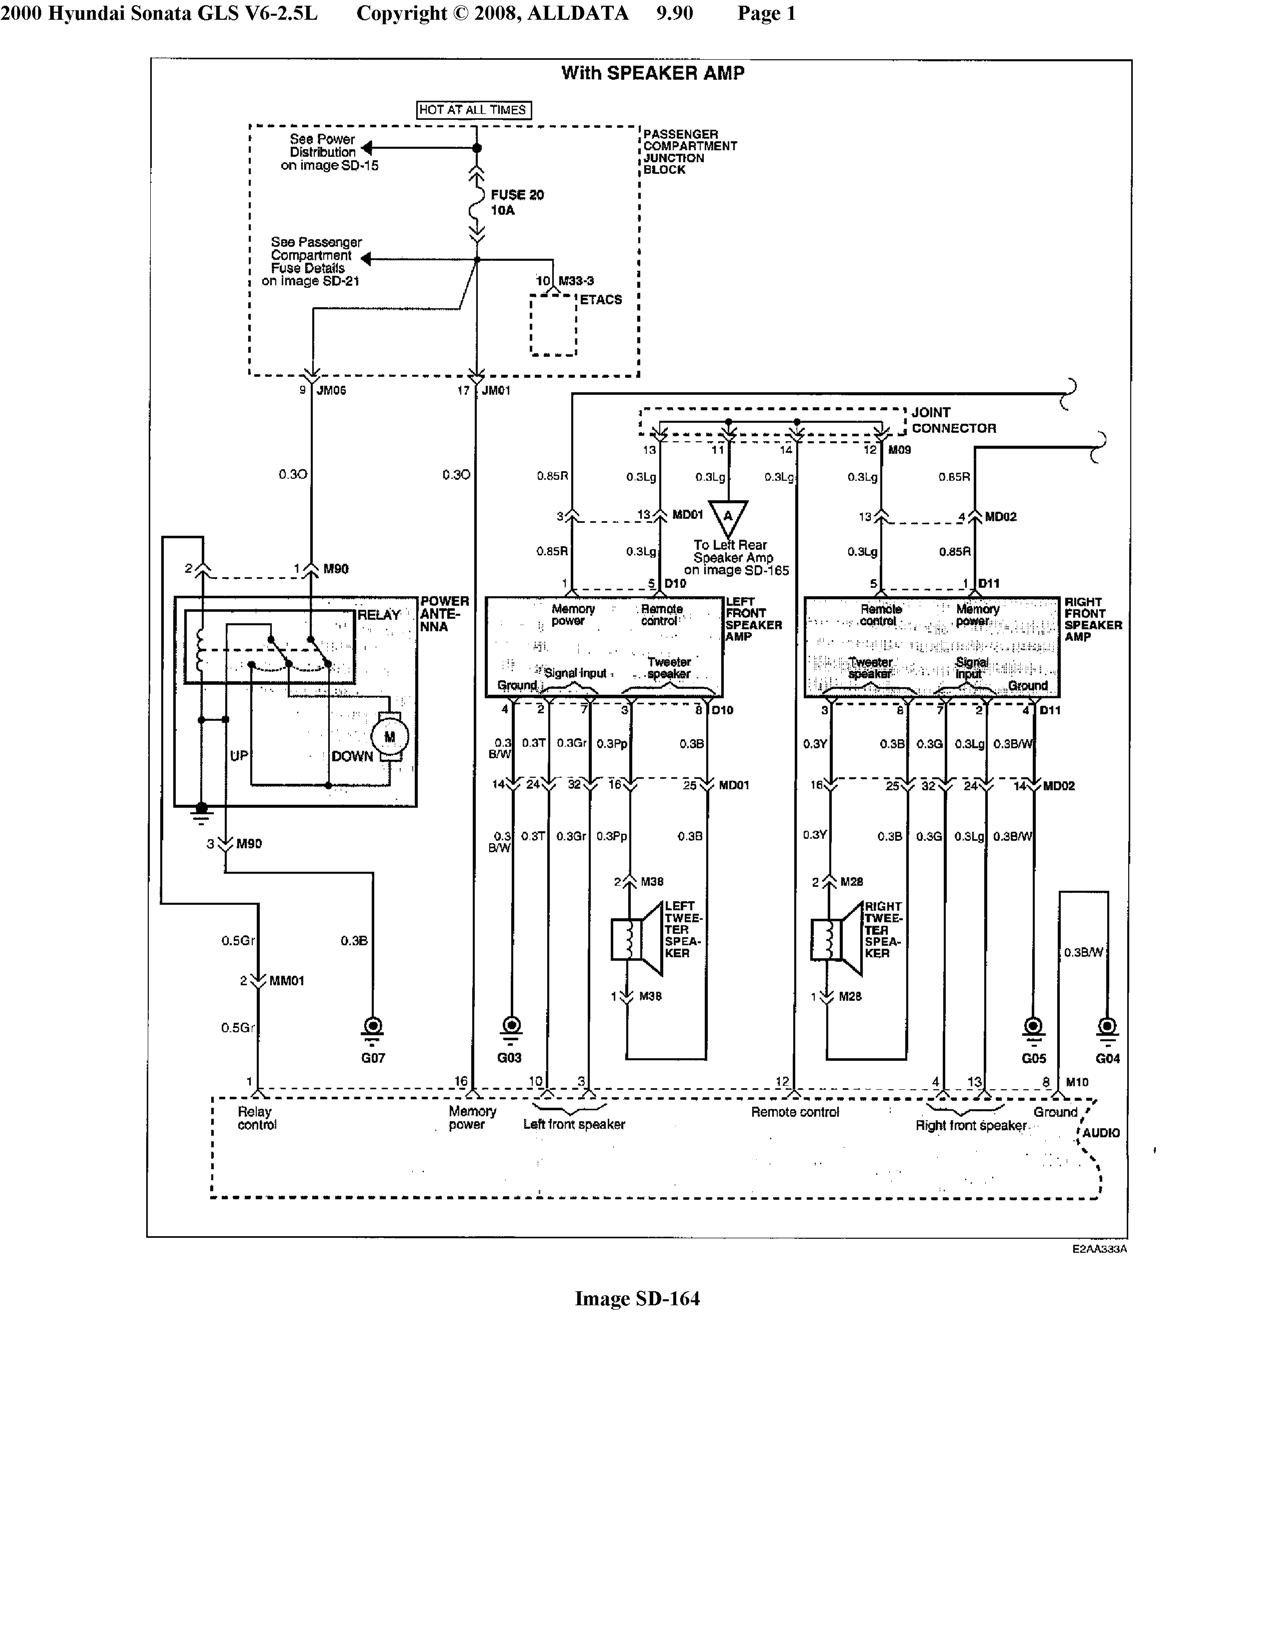 2010 12 18_085036_note0014 hyundai wiring diagrams hyundai sonata wiring diagram \u2022 free 2001 hyundai elantra wiring diagram at bakdesigns.co